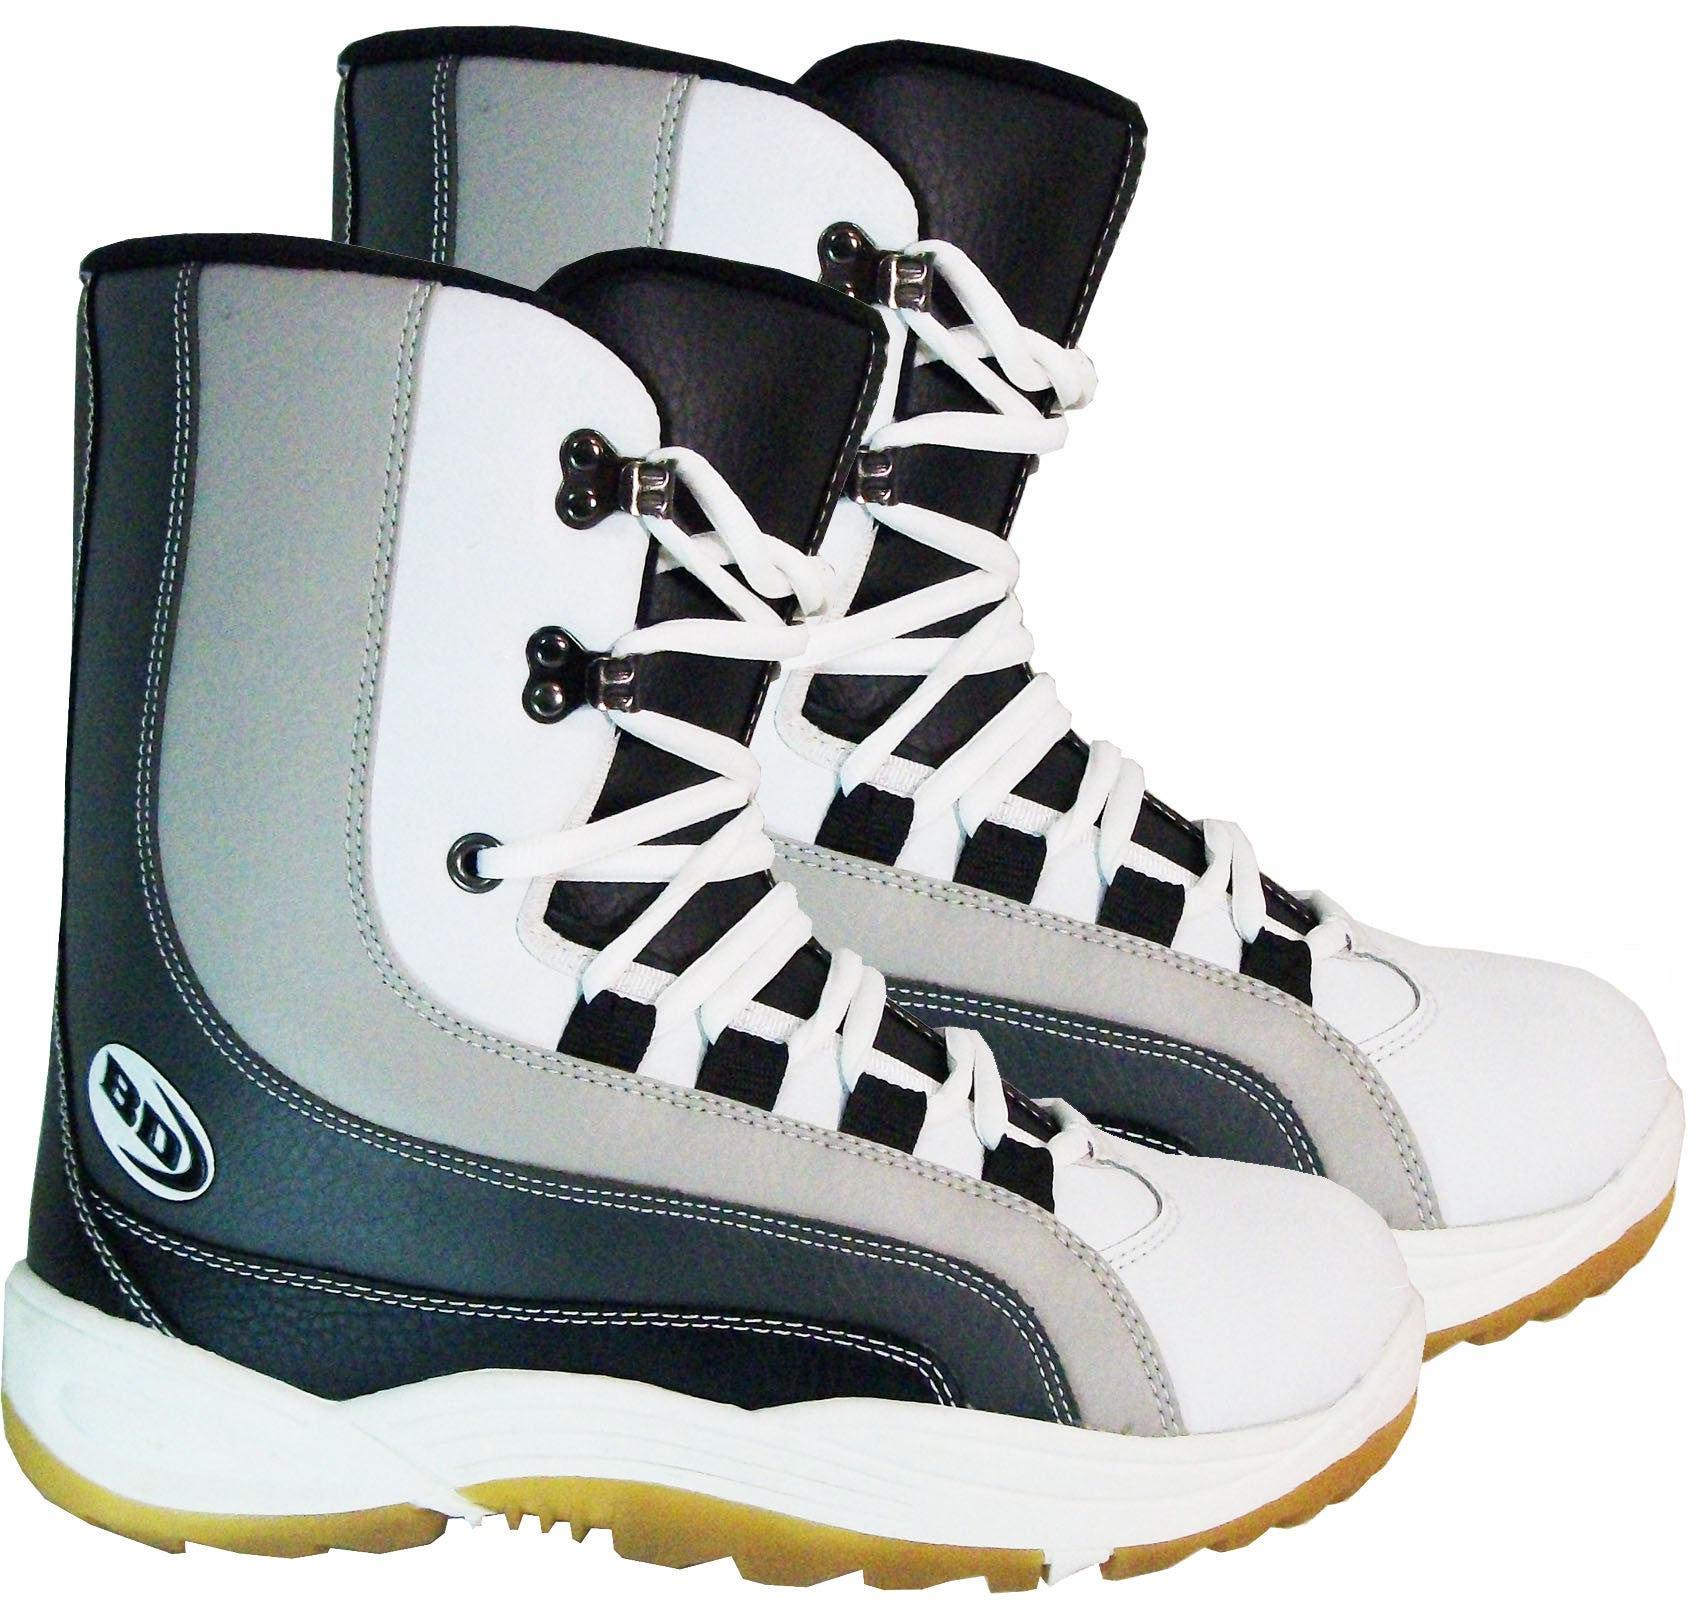 Black Dragon BD1091 Black White Snowboard Boots Size 4